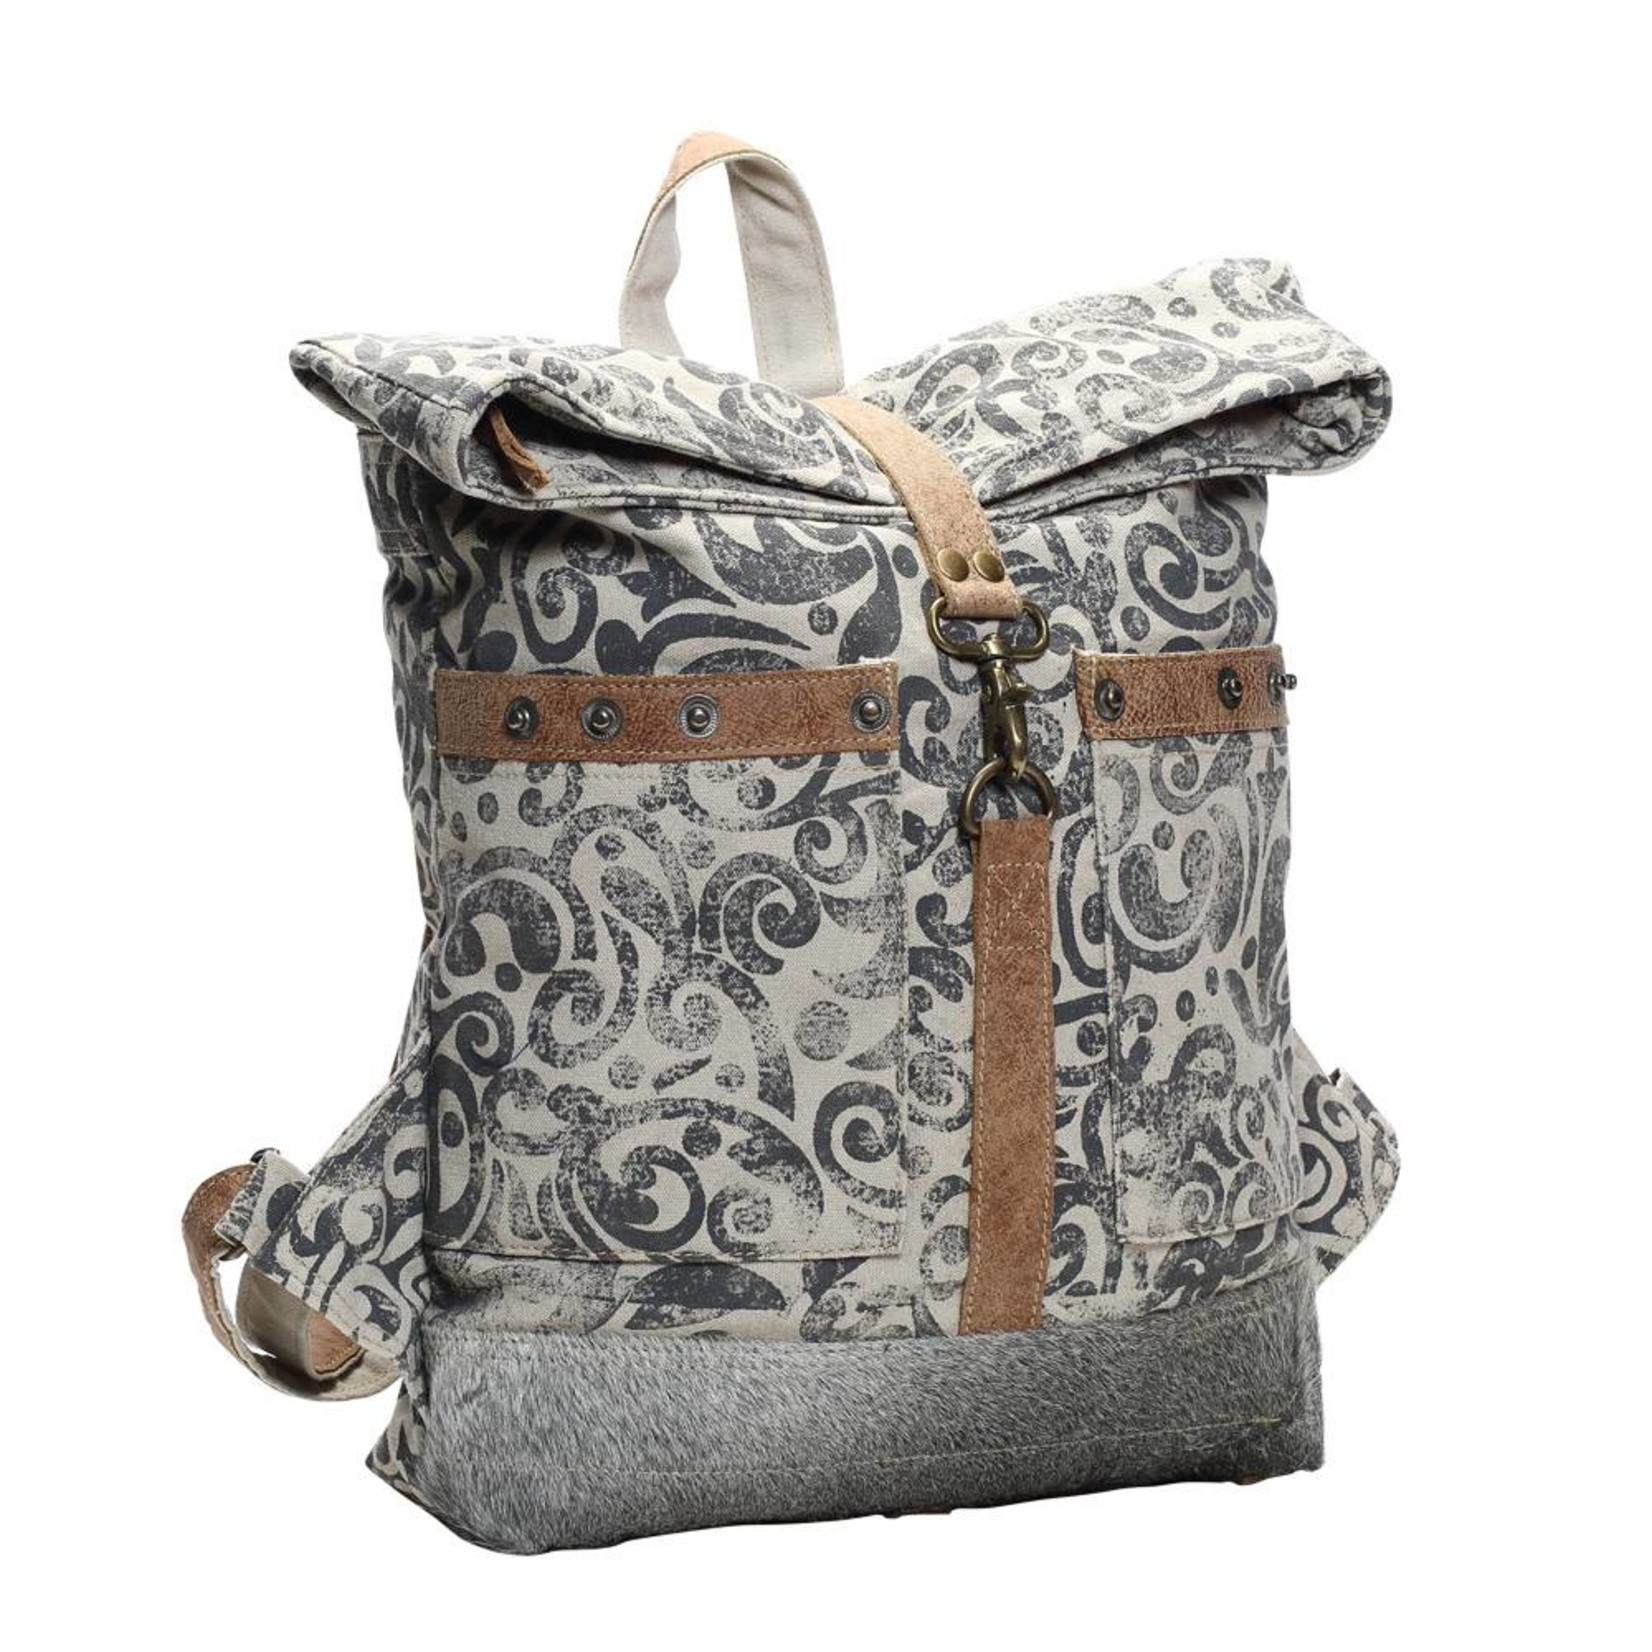 Myra Bags S-1161 Foldover Backpack